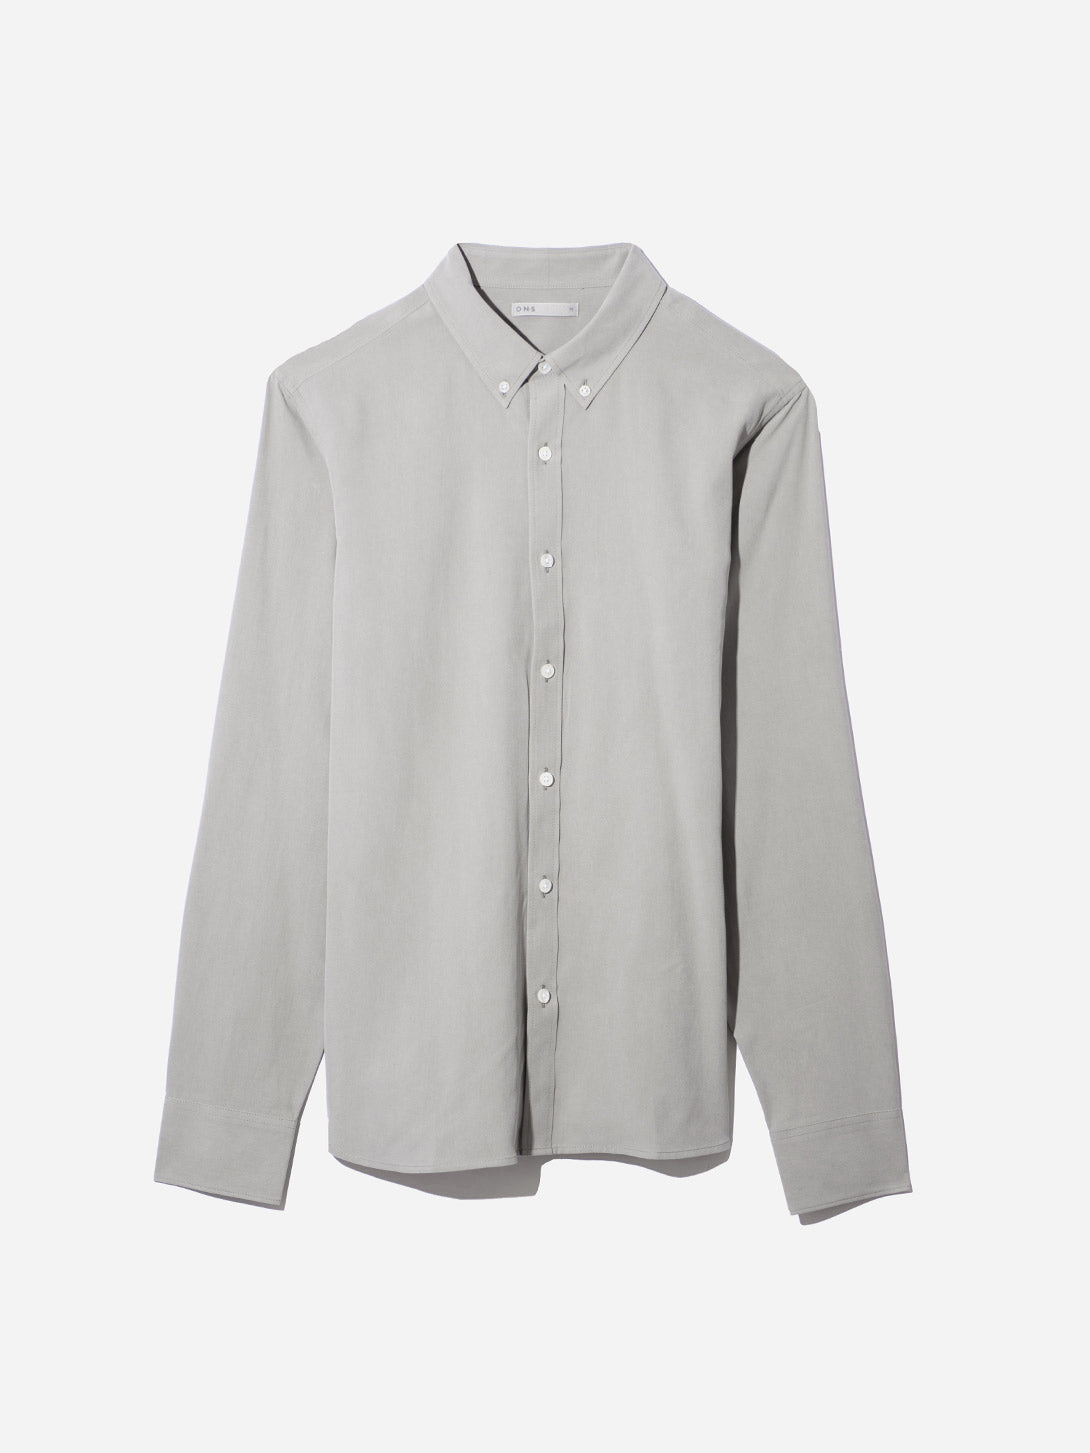 GRAY button down shirt for men fulton silk shirt ons clothing